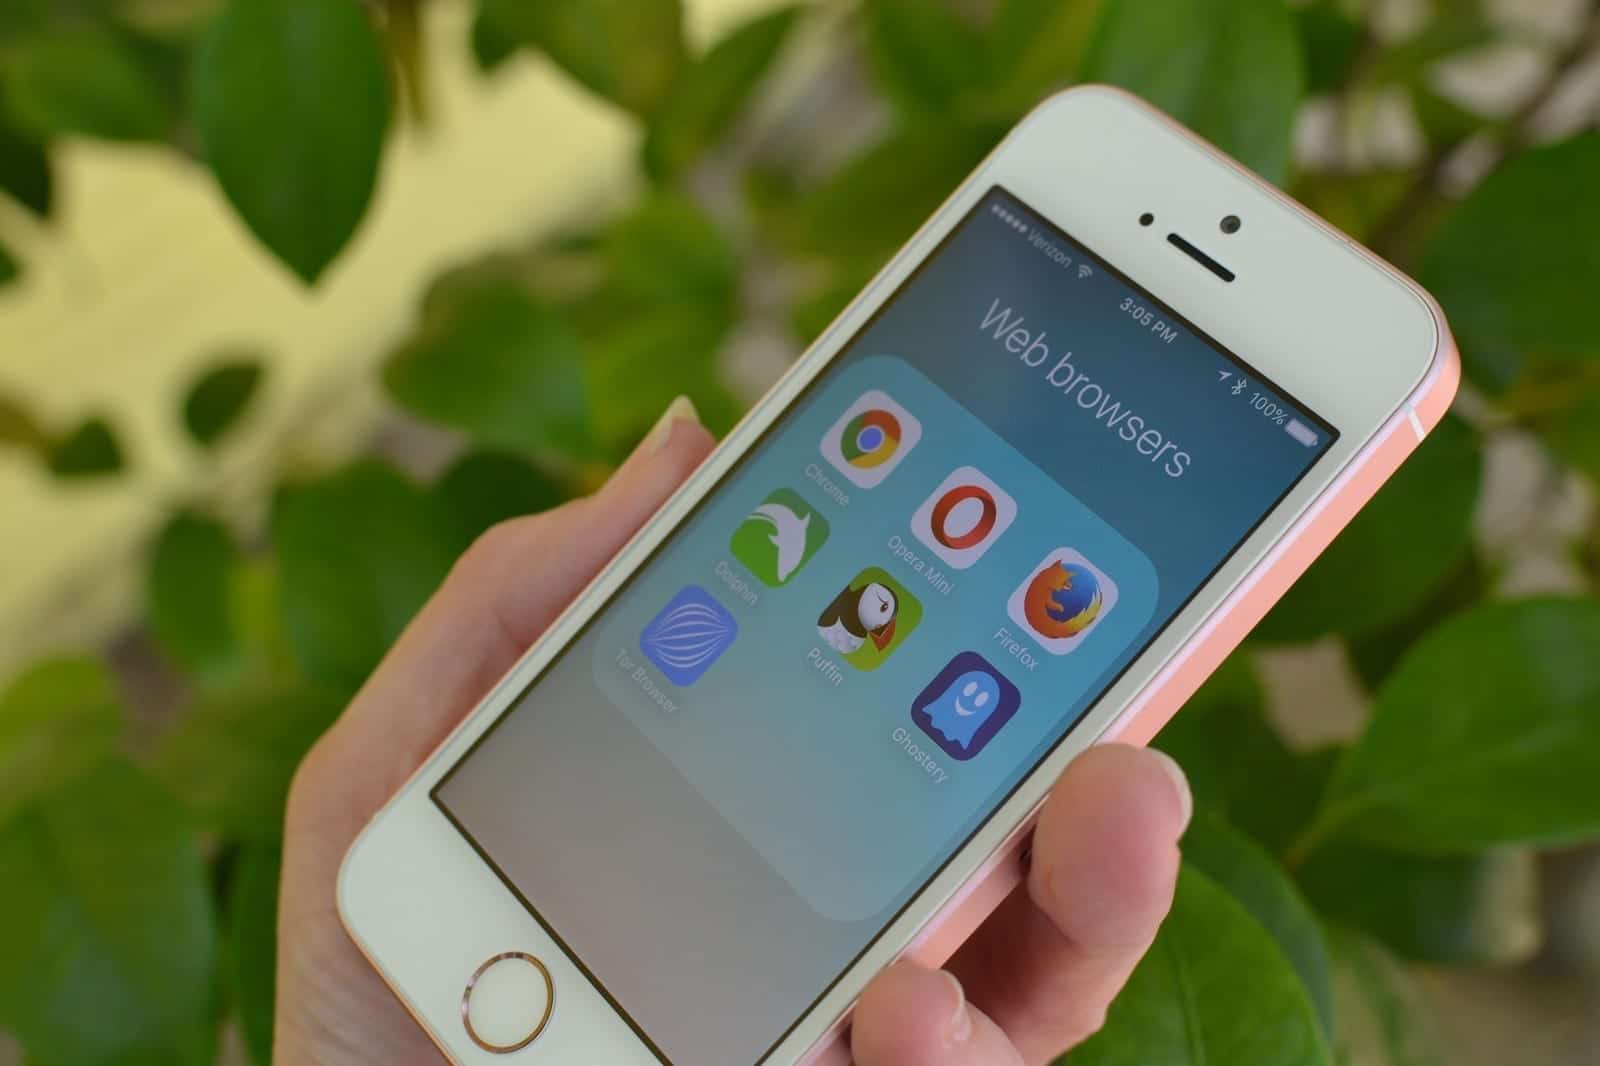 Here is our best 6 alternative web browser apps for iPhone's Safari browser